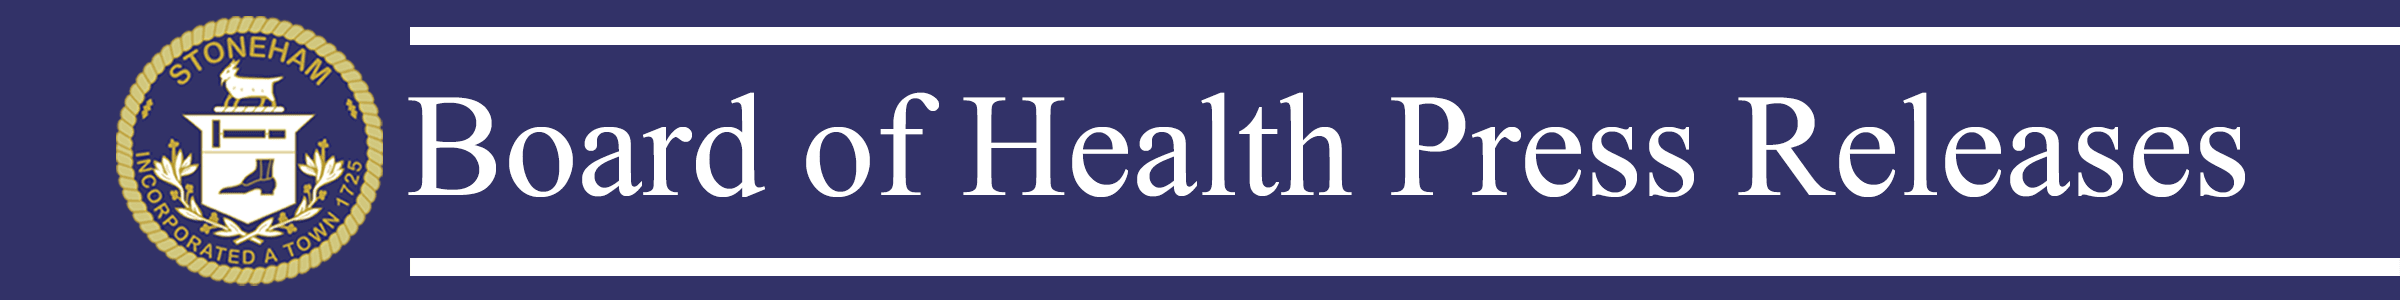 Board of Health Press Releases